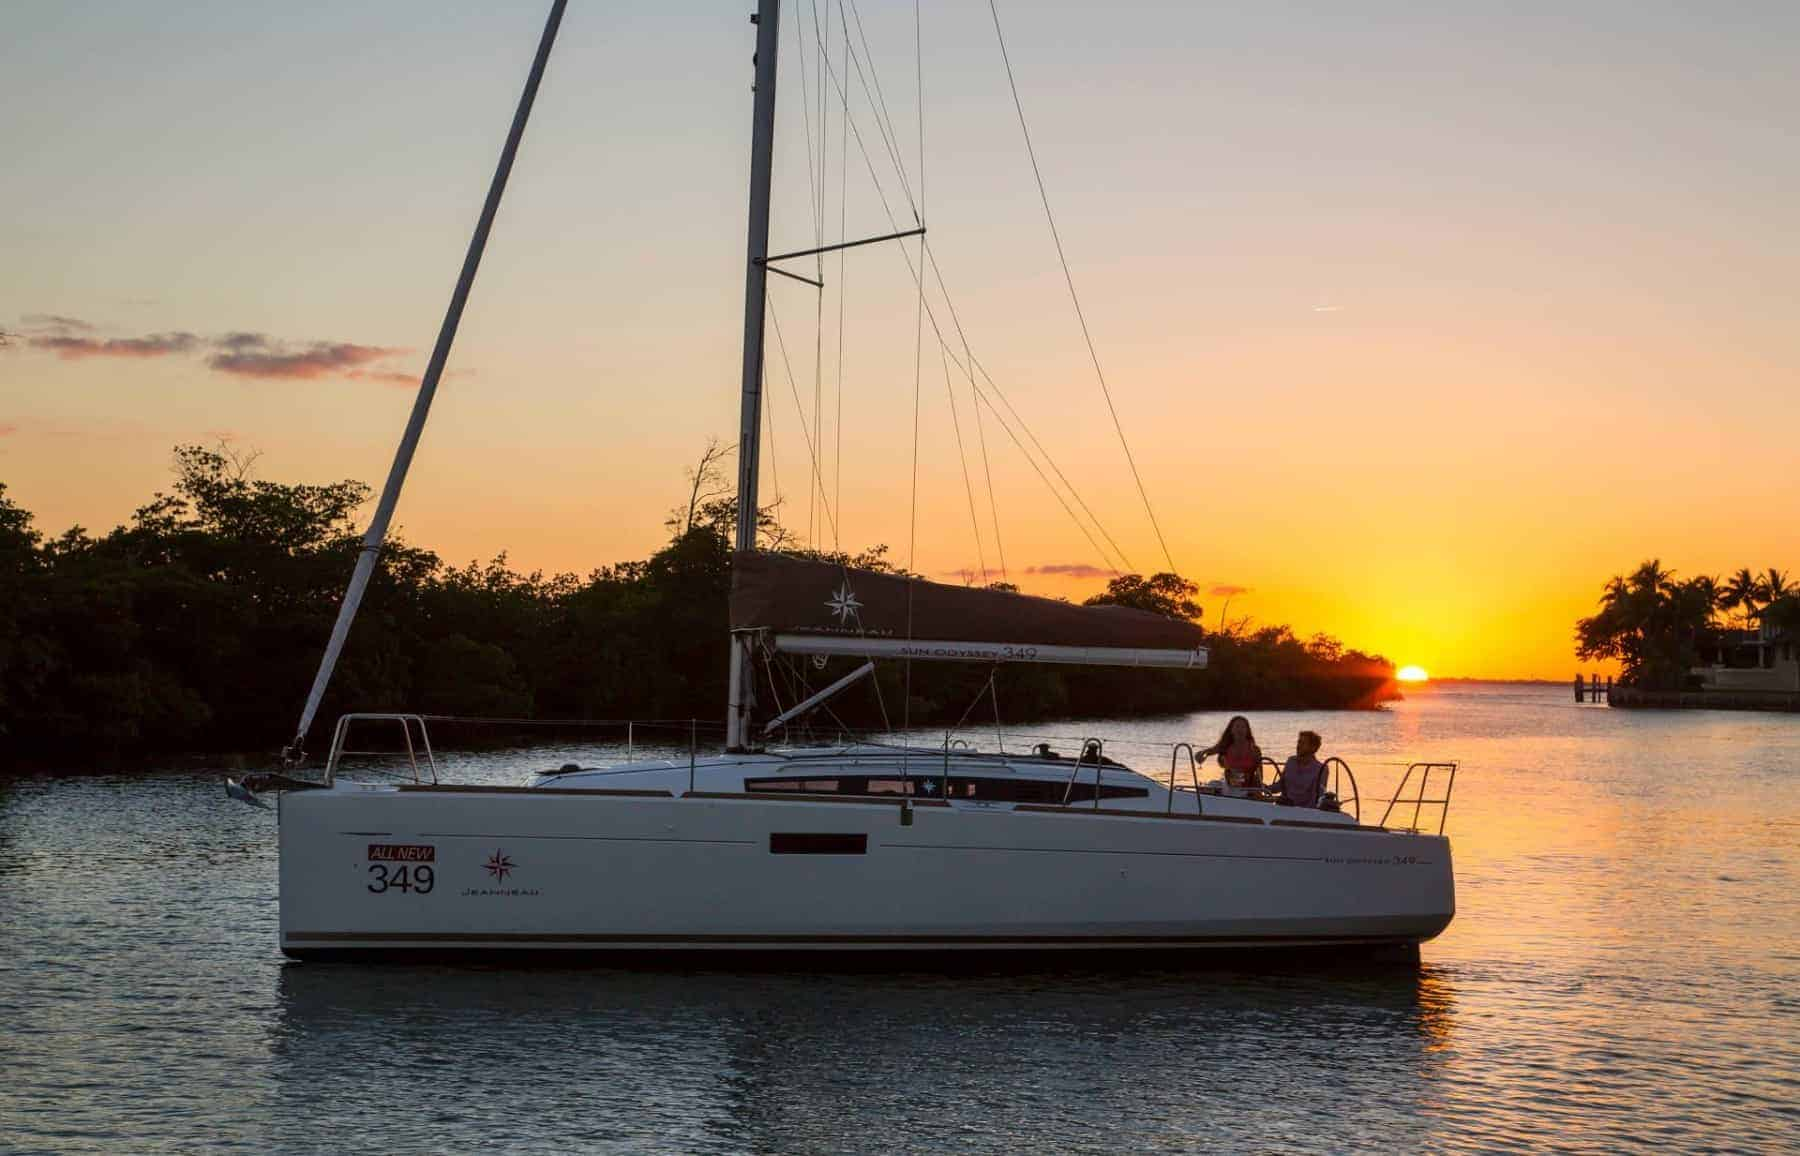 Anchored Jeanneau Sun Odyssey 349 with a beautiful sunset in the background